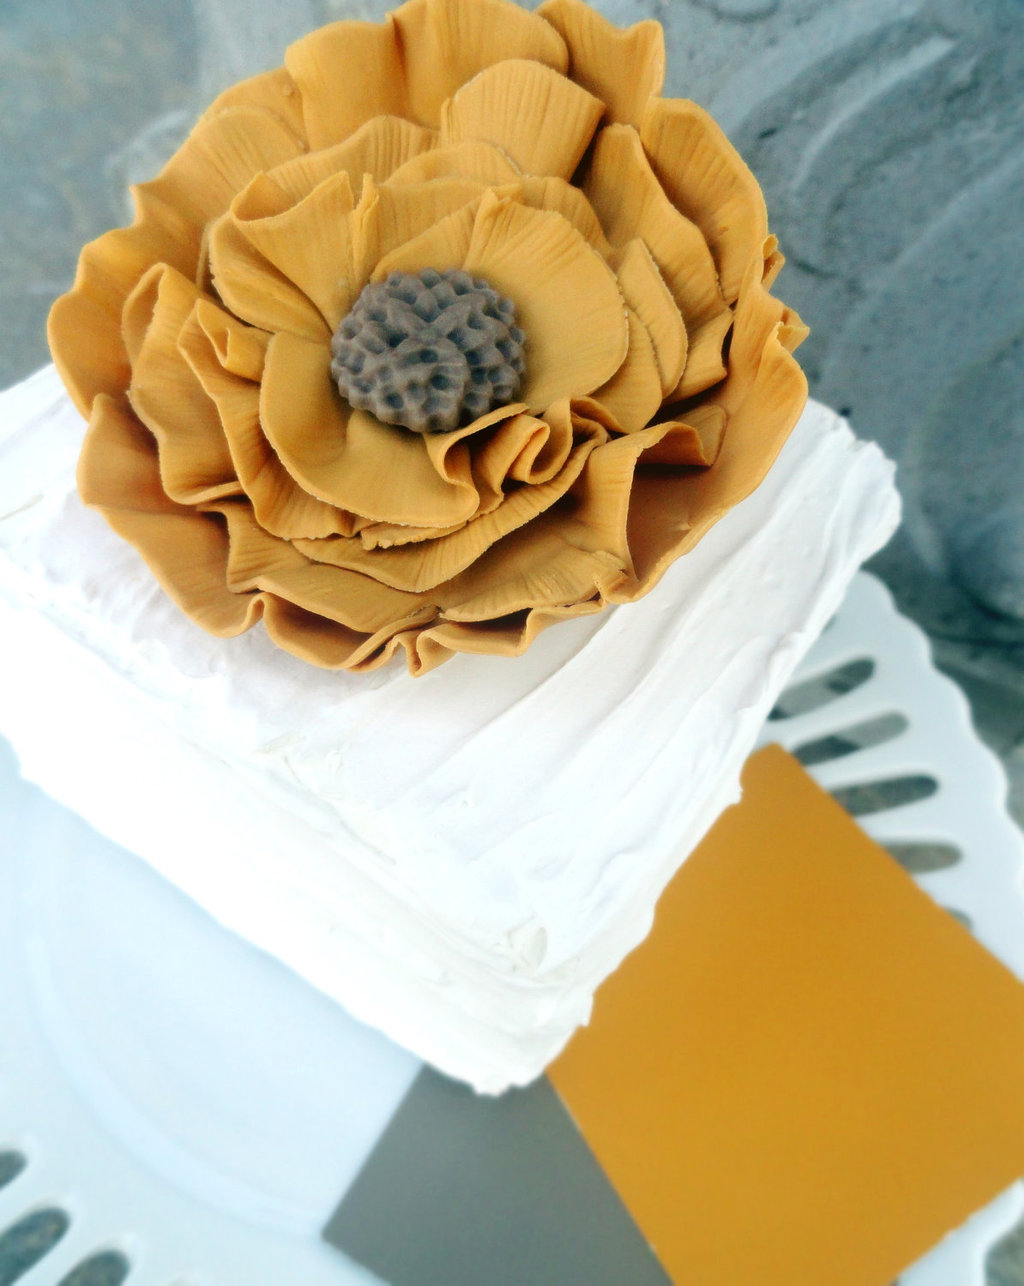 Fondant-wedding-finds-to-add-sweetness-to-handmade-weddings-ruffled-flower.full